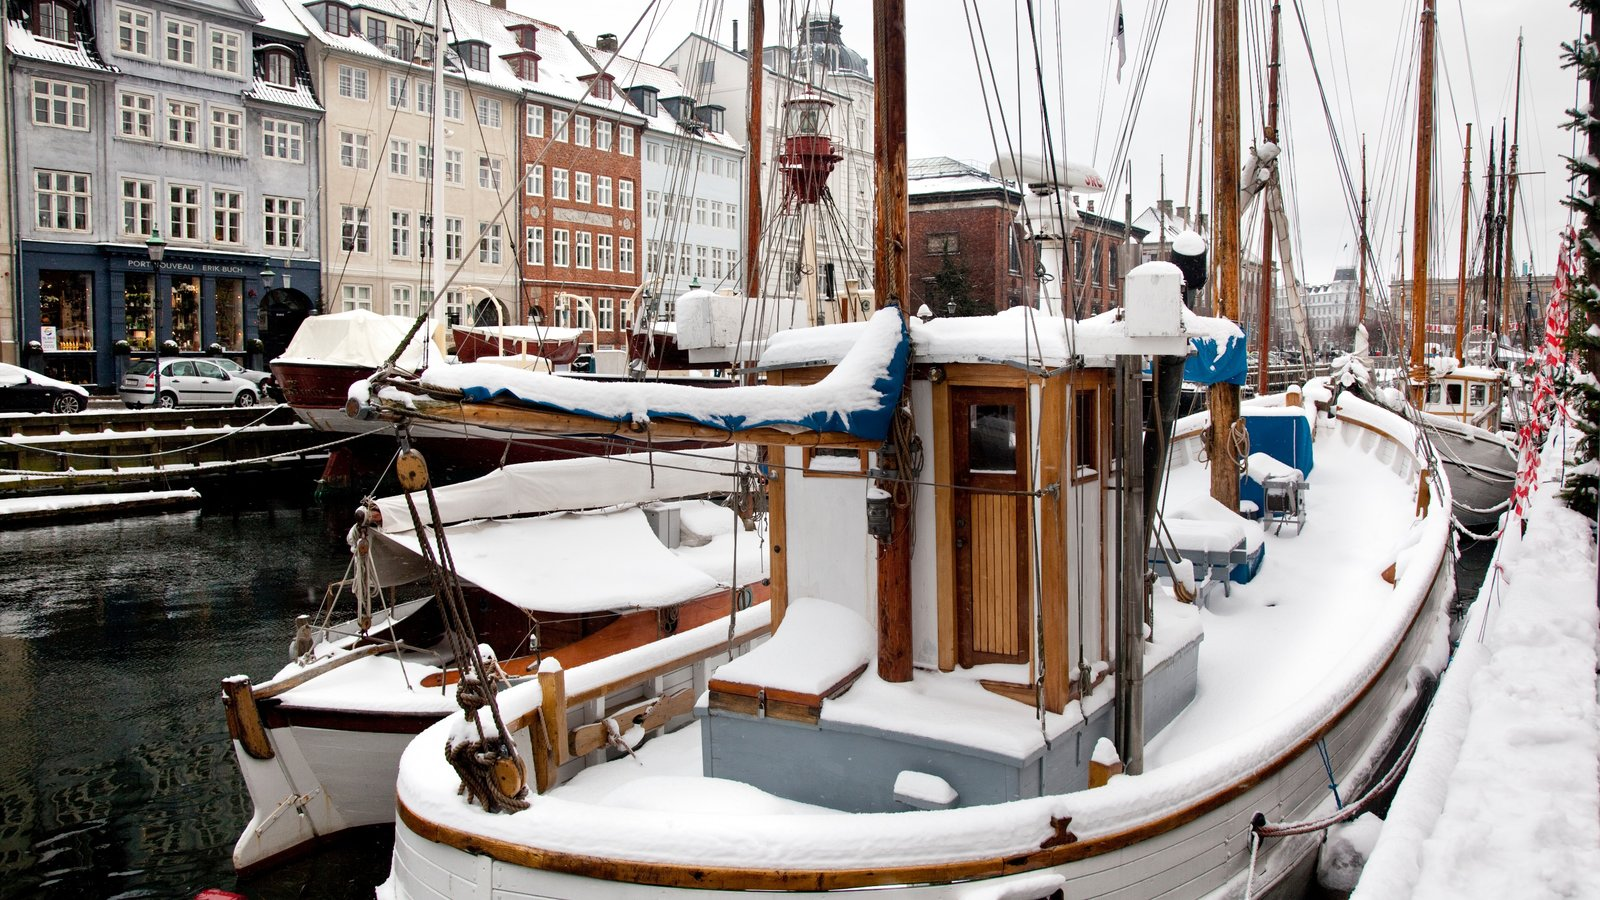 Nyhavn showing boating, snow and a marina